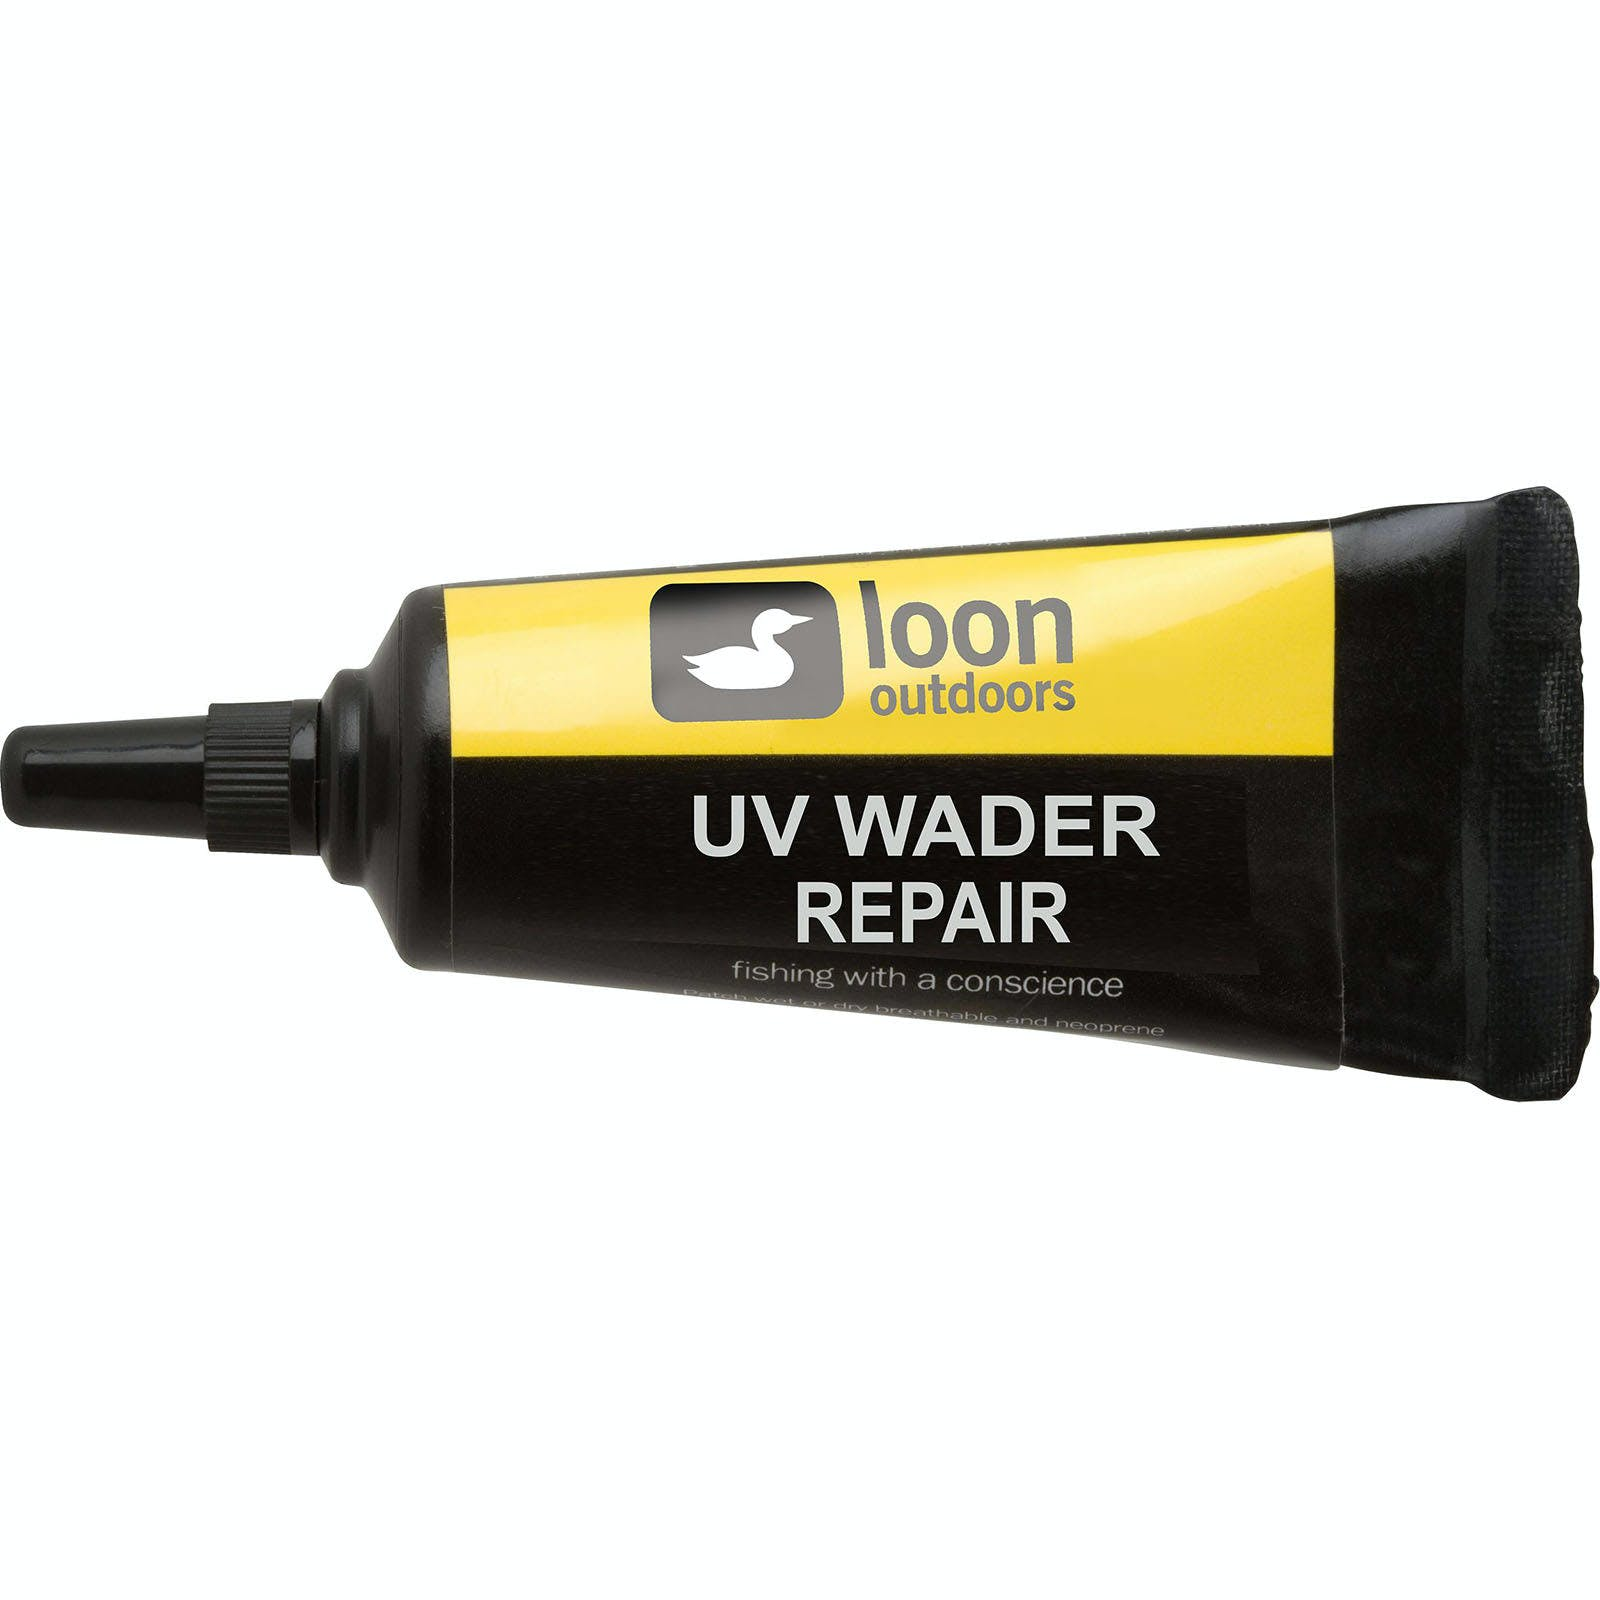 Loon Outdoors - UV Wader Repair